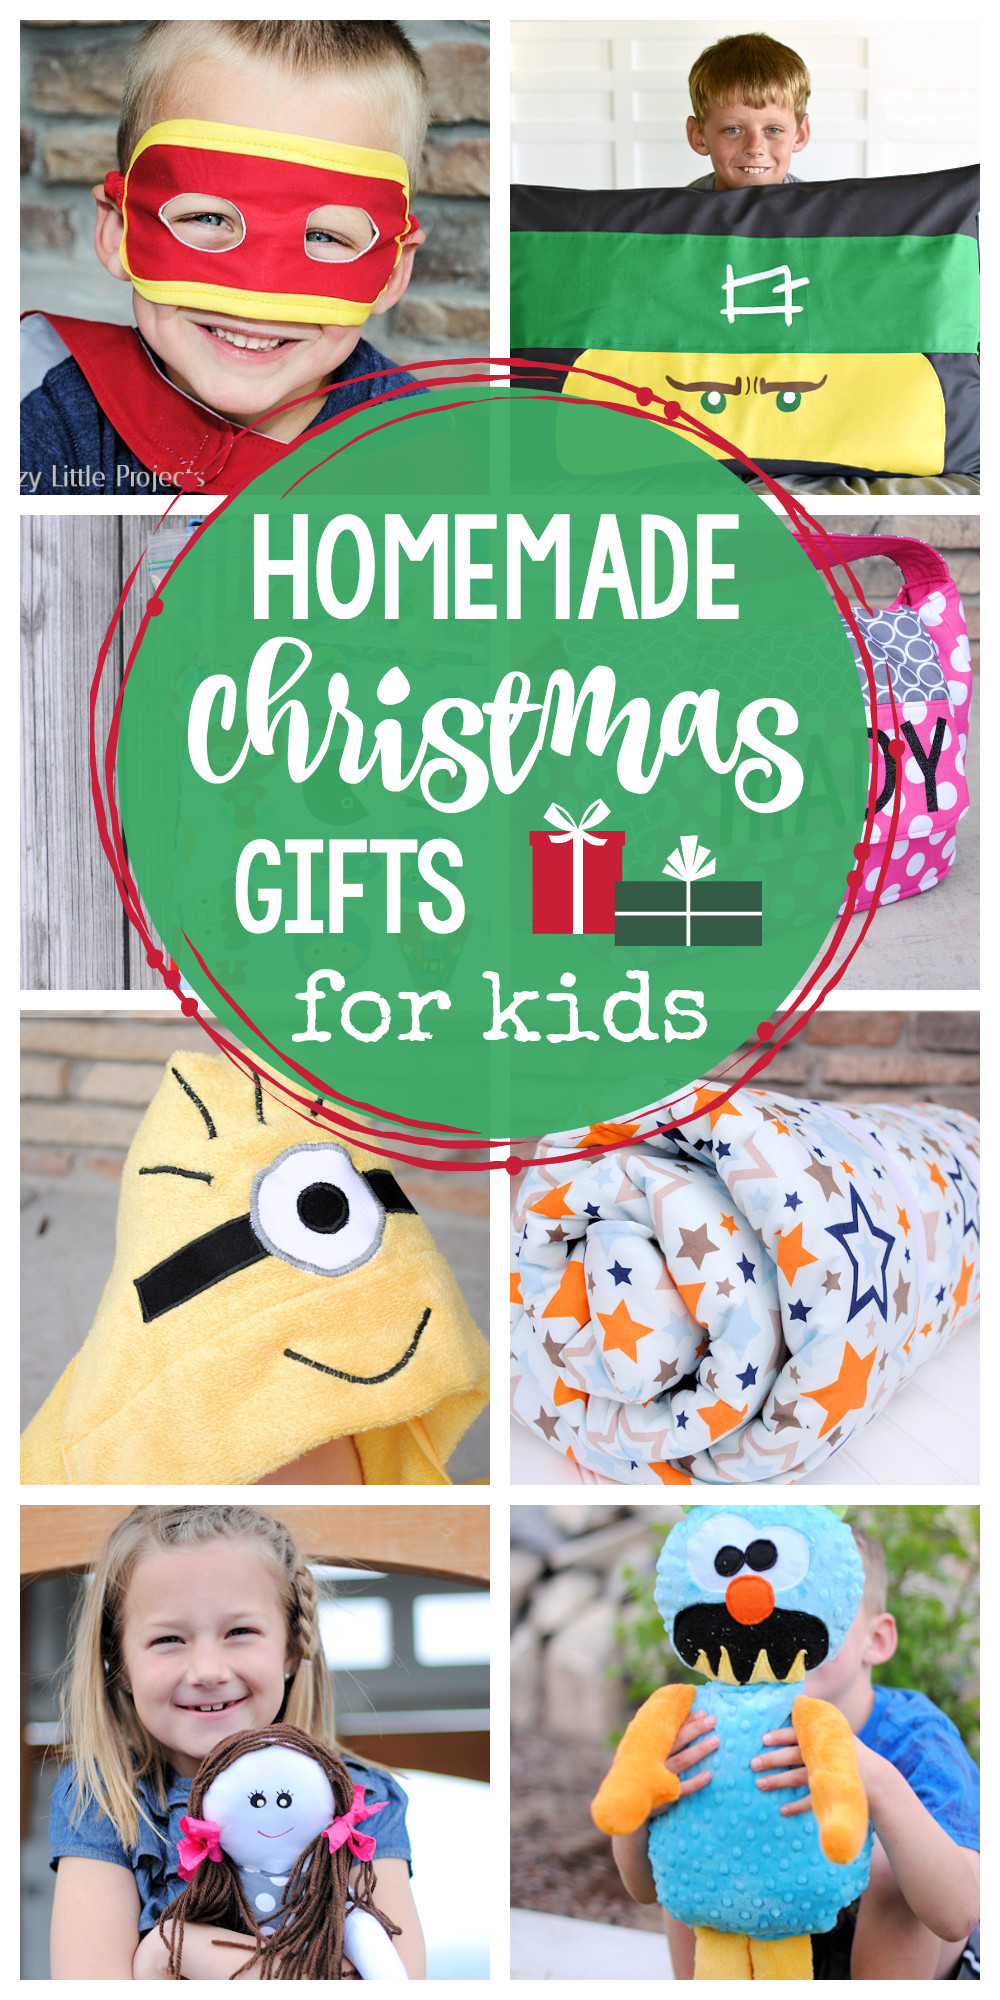 Gifts For Gifted Children  25 Homemade Christmas Gifts for Kids Crazy Little Projects